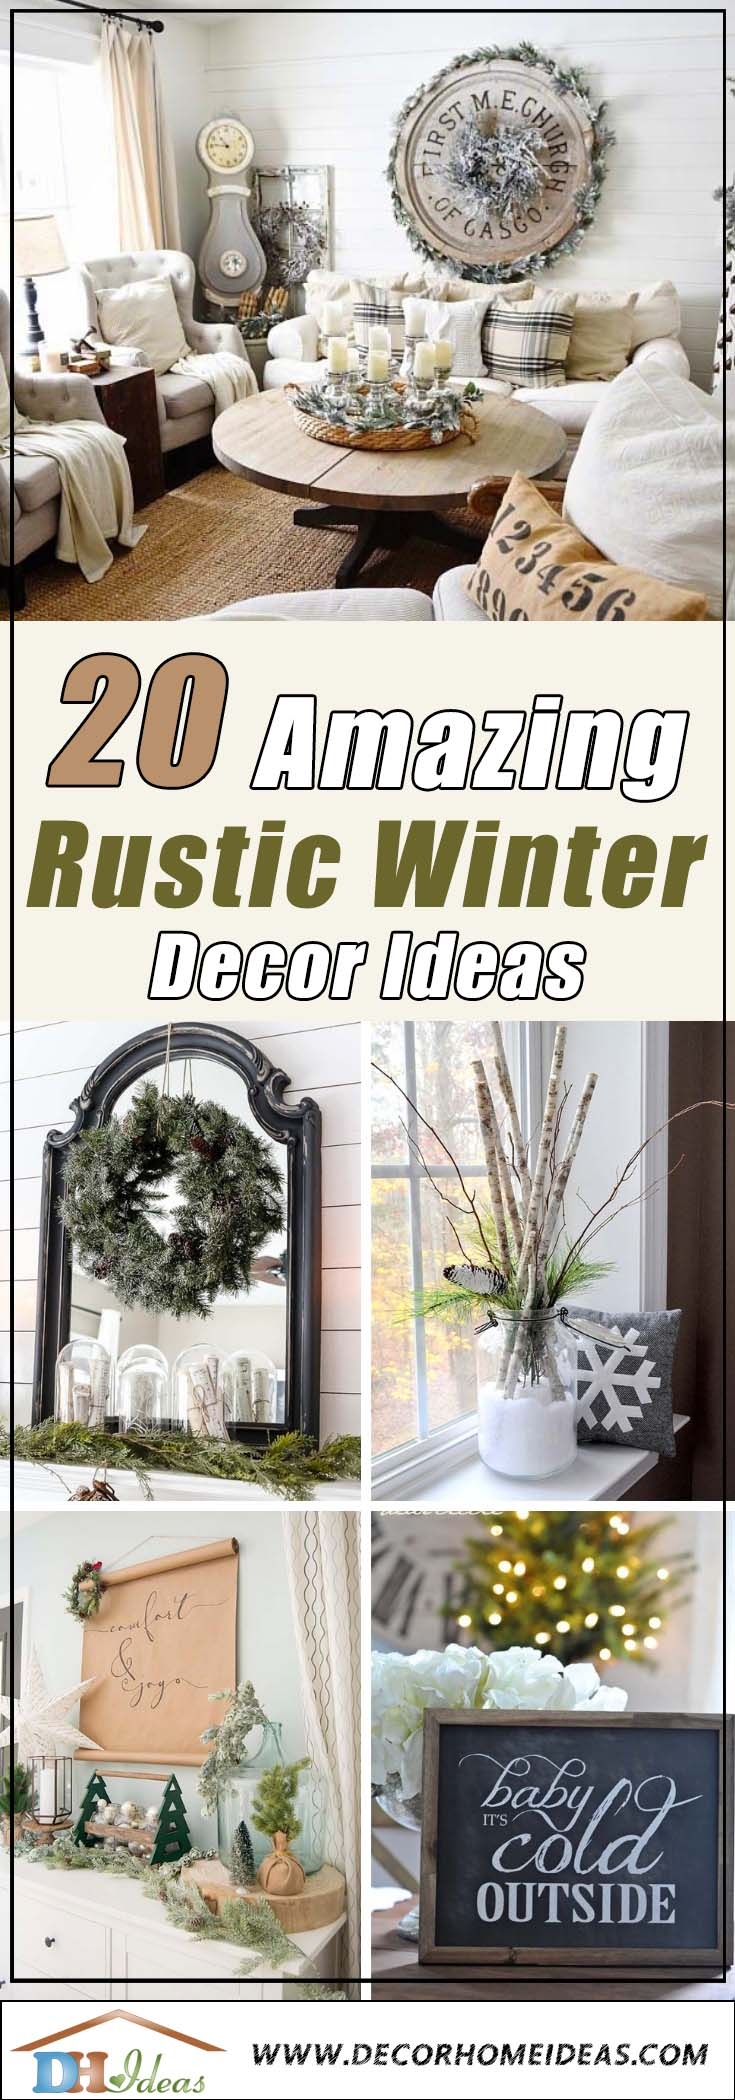 Rustic Winter Decorations #rustic #winterdecor #homedecor #decorhomeideas